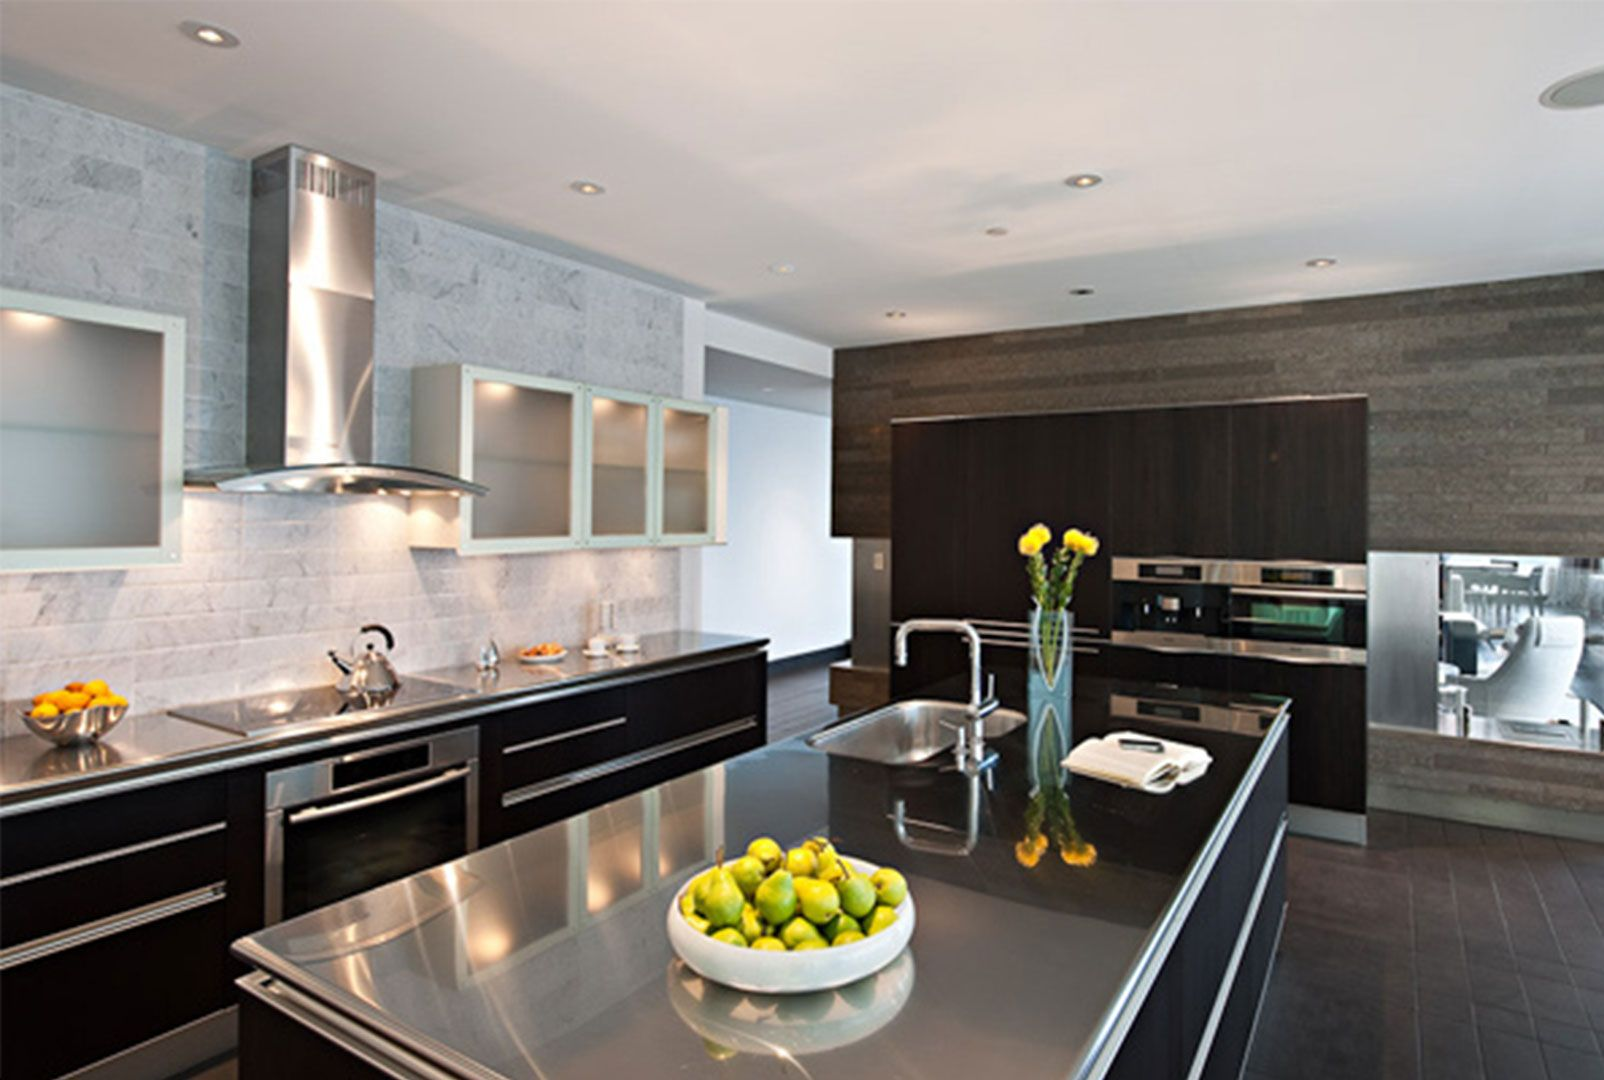 marvelous Top Kitchen Designs 2014 #7: Best Images About Kitchens With Dark Cabinets On Pinterest - Kitchen designs  pictures 2014